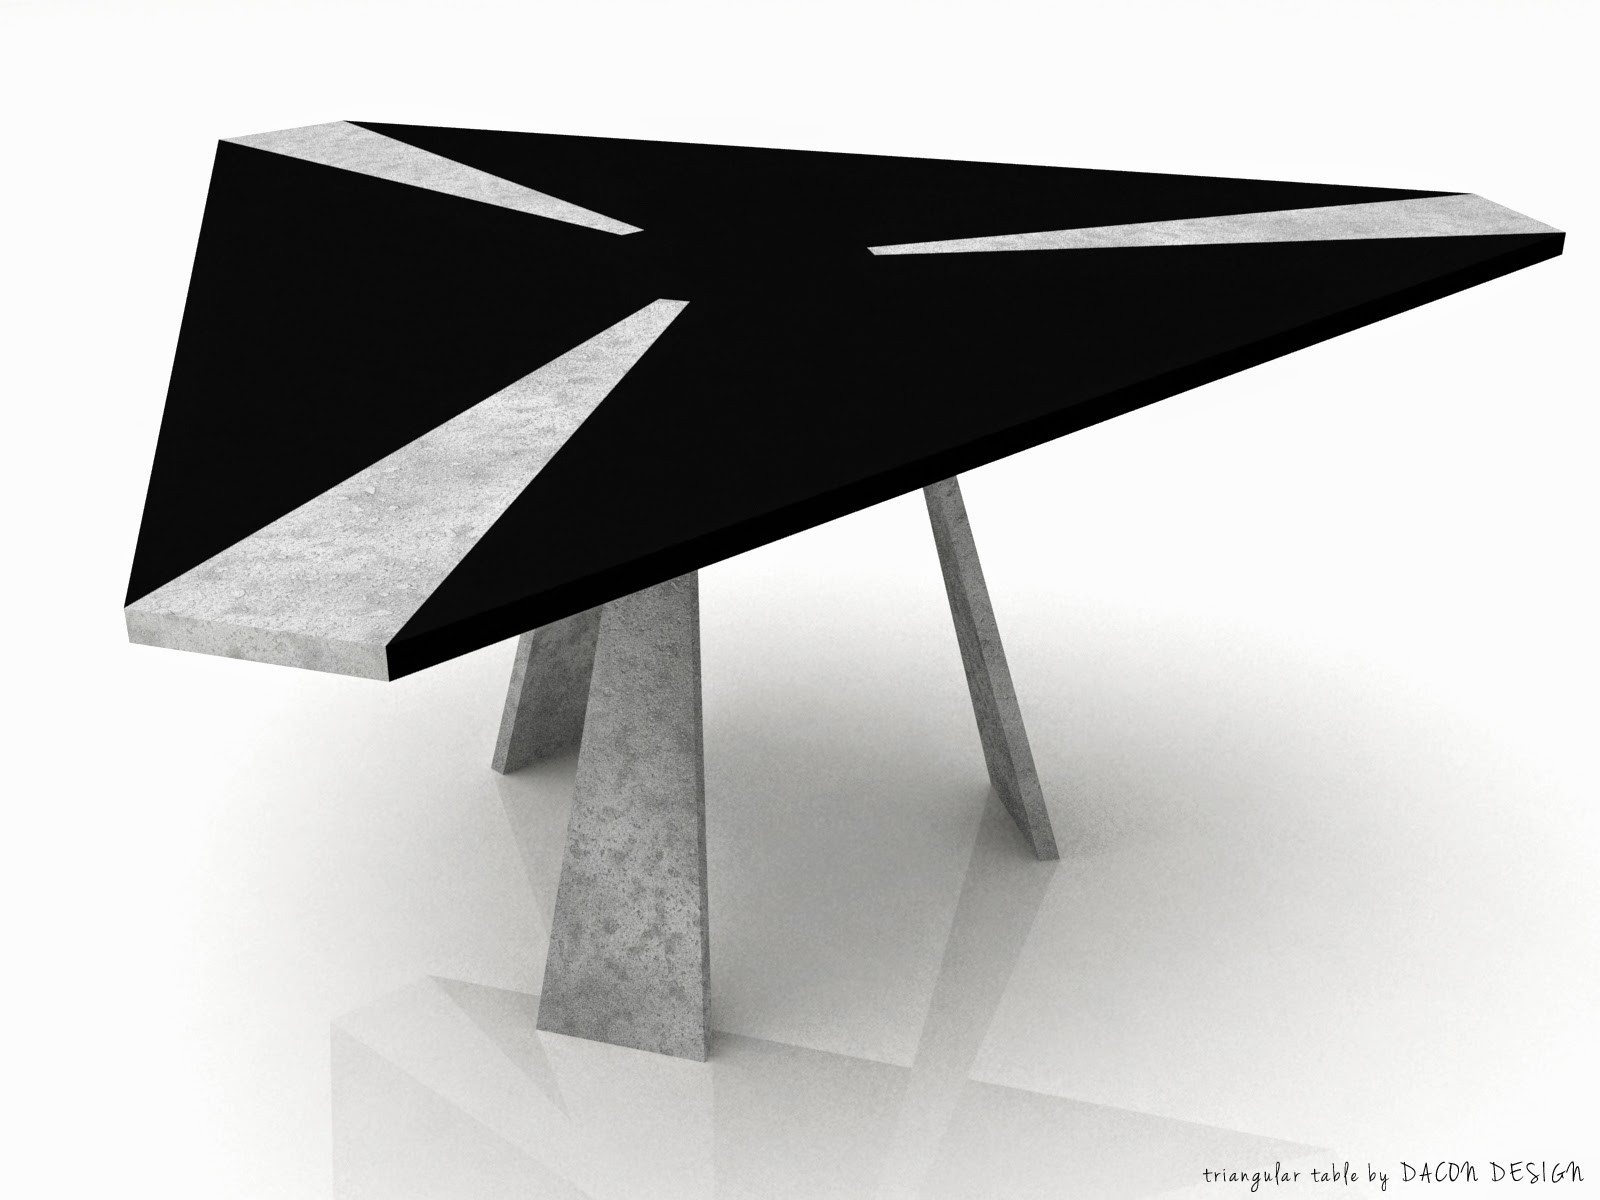 Dacon-Design-interiors-architect-triangular-table-architectural-concrete